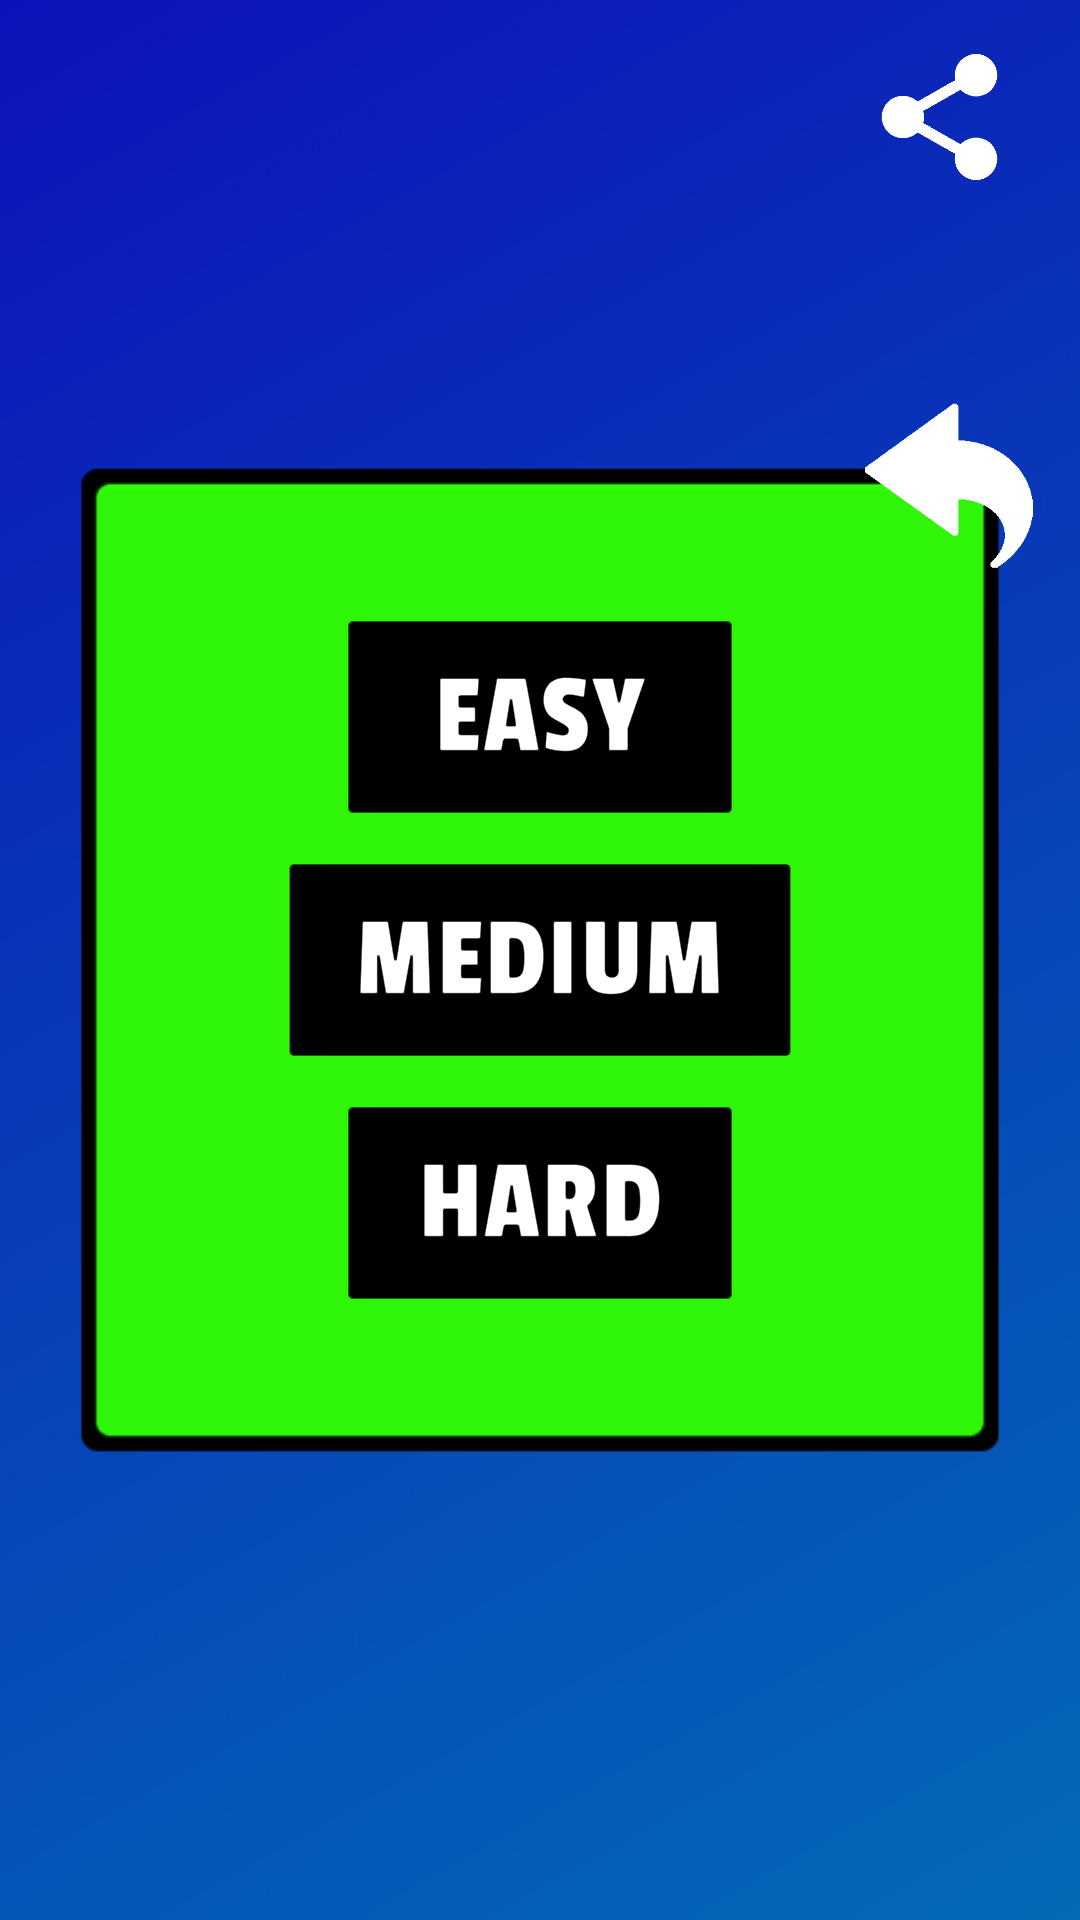 Tensity - A Simple Puzzle Game For Adults